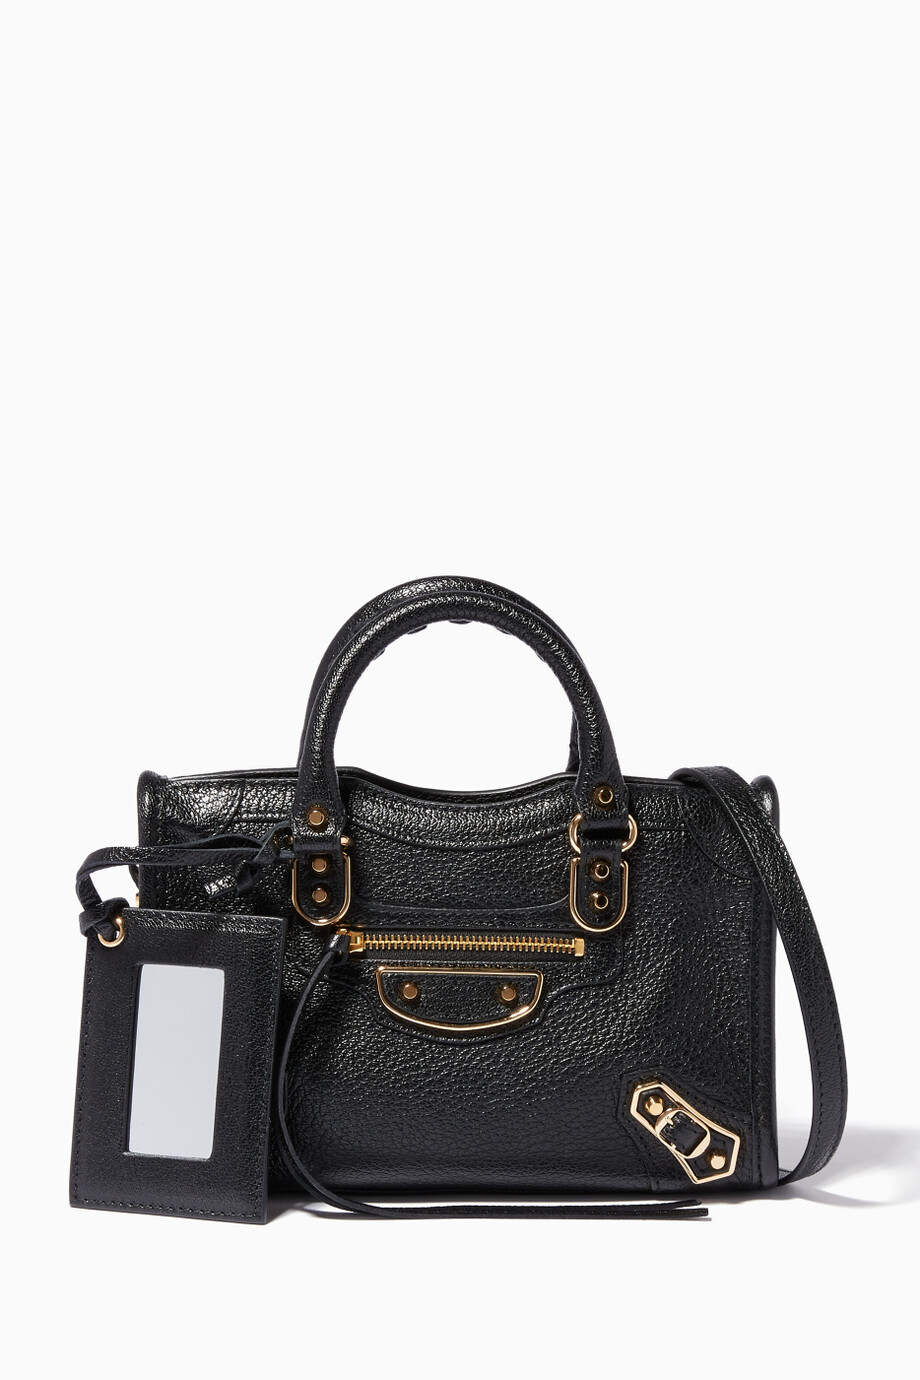 9bd3f92281 Shop Balenciaga Black Black Nano Classic Metallic Edge City Cross ...